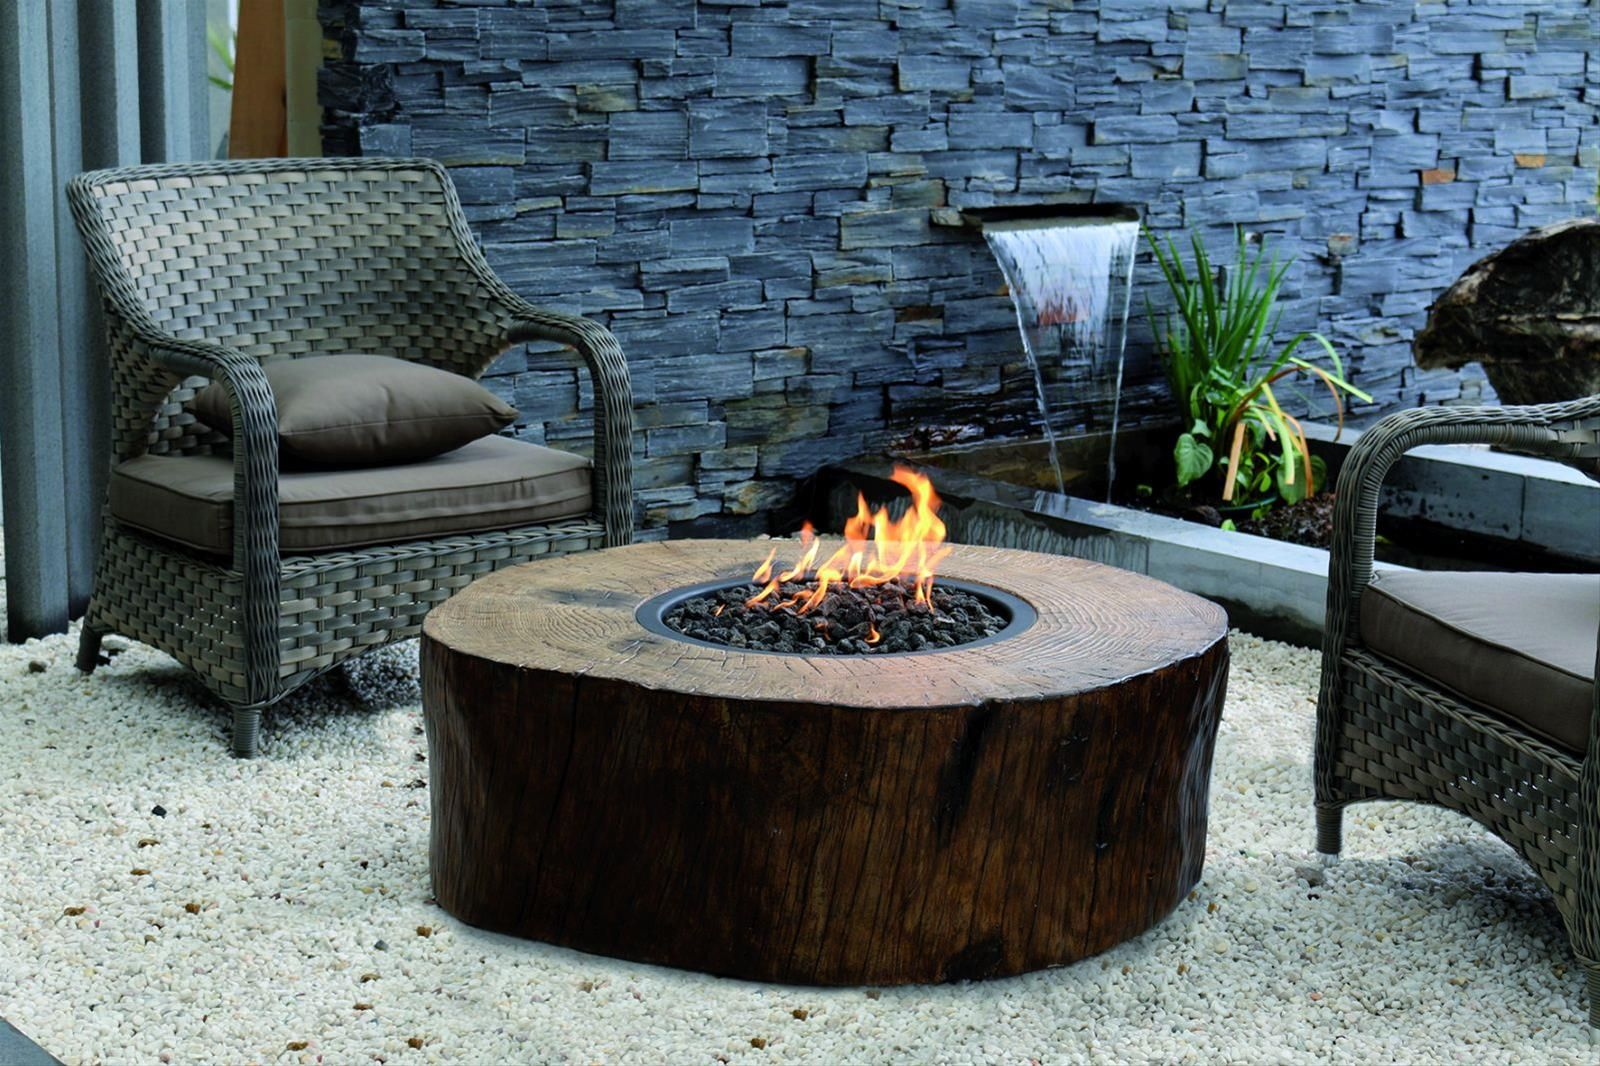 Where Can I Find A Fire Pit Table Uk Propane Fire Pit Table Fire Pit Table Fire Pit Table Uk Modern outdoor gas fire pits uk